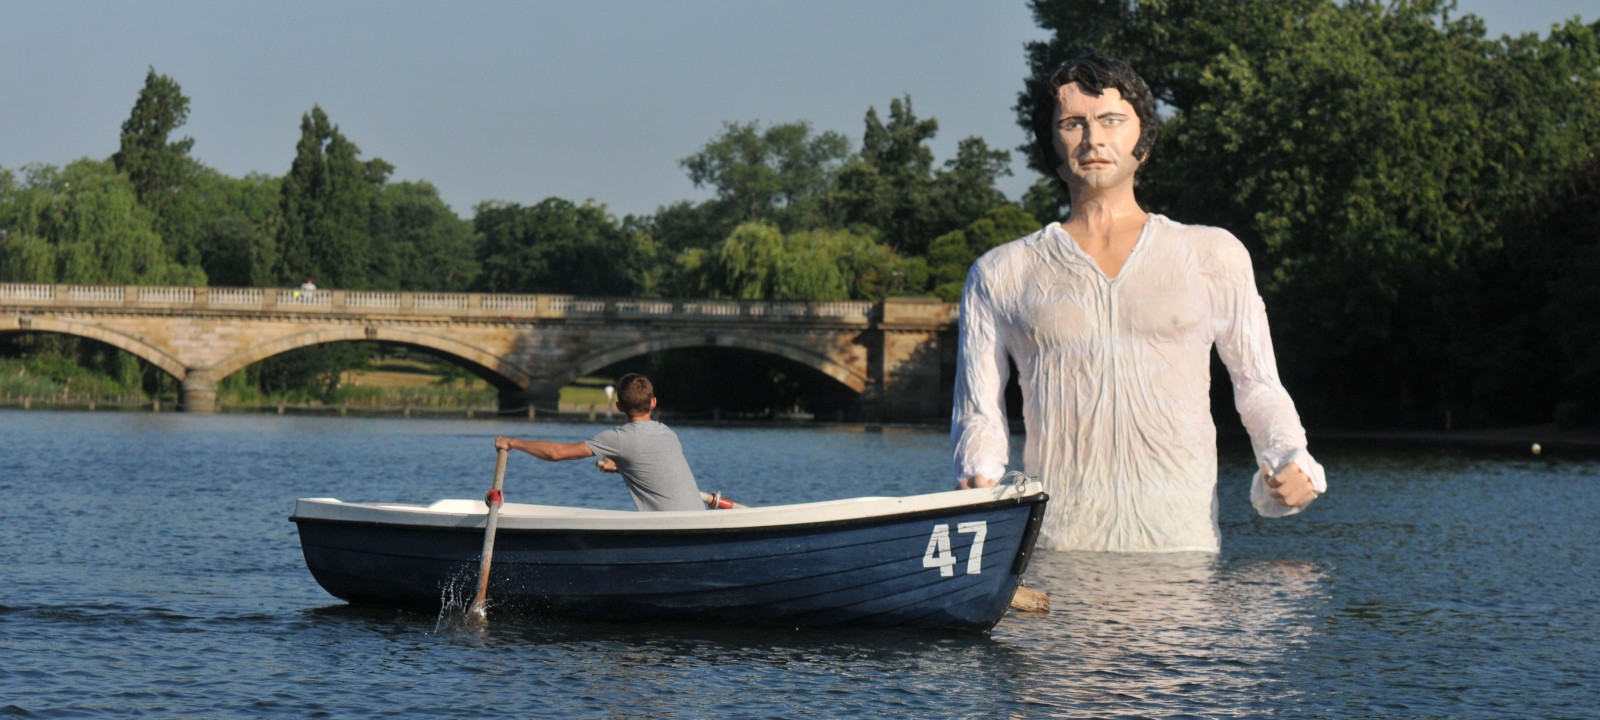 A giant sculpture of Mr Darcy unveiled in The Serpentine, London, Britain – 08 Jul 2013